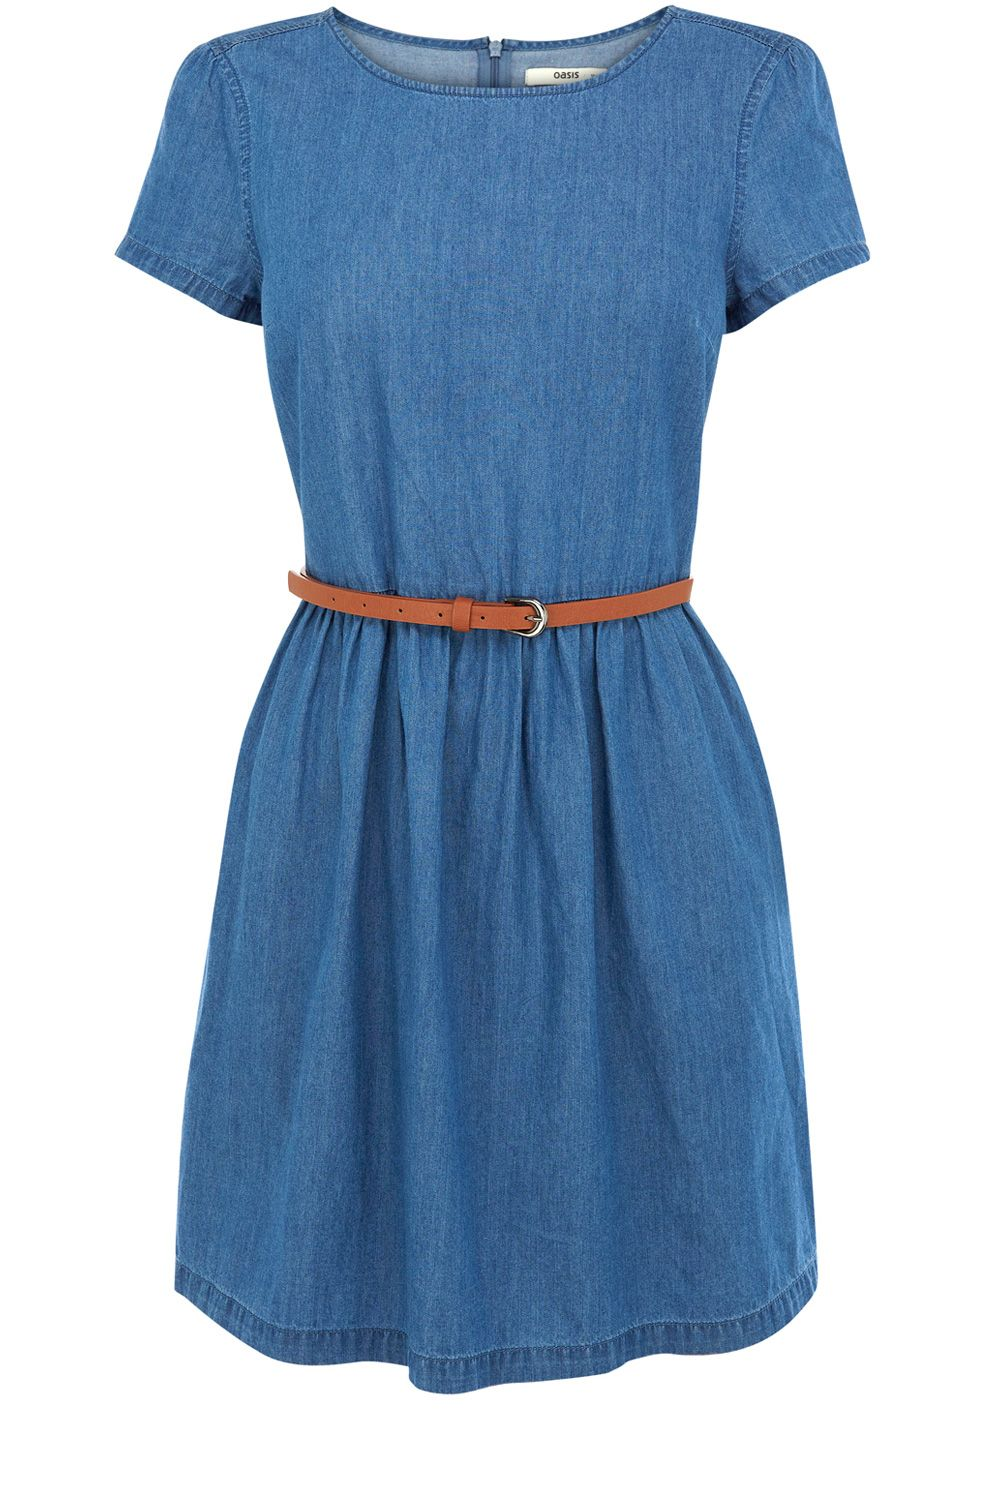 Oasis hayley chambray dress in blue denim lyst for Chambray dress